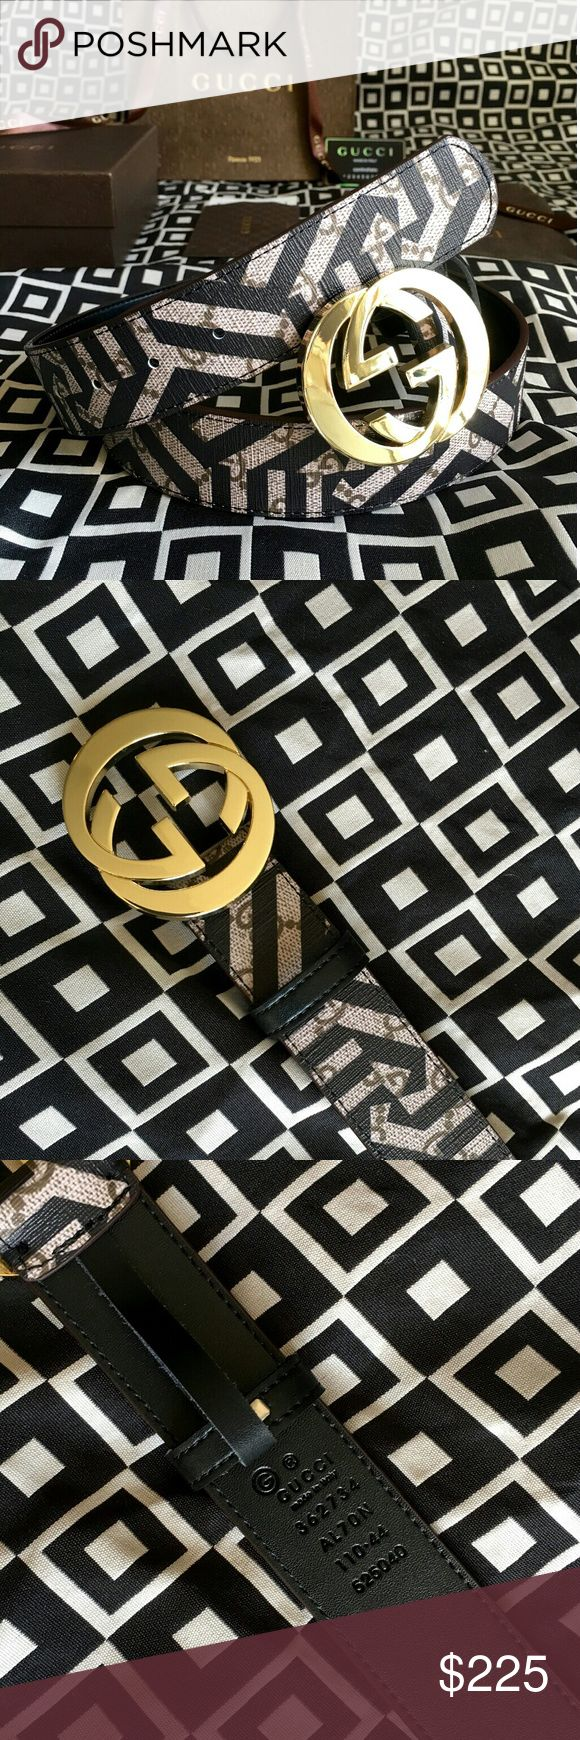 """Gucci GG Caleido Belt!!! Gucci GG Caleido Belt With Gold G Buckle!!!  Brand New!!!  Size Available - 32"""", 34"""", 38"""", 40"""", 42"""", 44""""!!!  Includes Gift Box, Dust Bag, Authenticity Card, Ribbon, Etc!!!  Great Gift Idea!!!  Last Available!!!  Check My Listings For Other Great Items!!!             Ignore: Gucci gg monogram casual dress belts men's women's guccissma leather monogram web tiger bee embossed panther wool cable knit blooms supreme print angry cat ufo dragon studded snake double g Gucci…"""